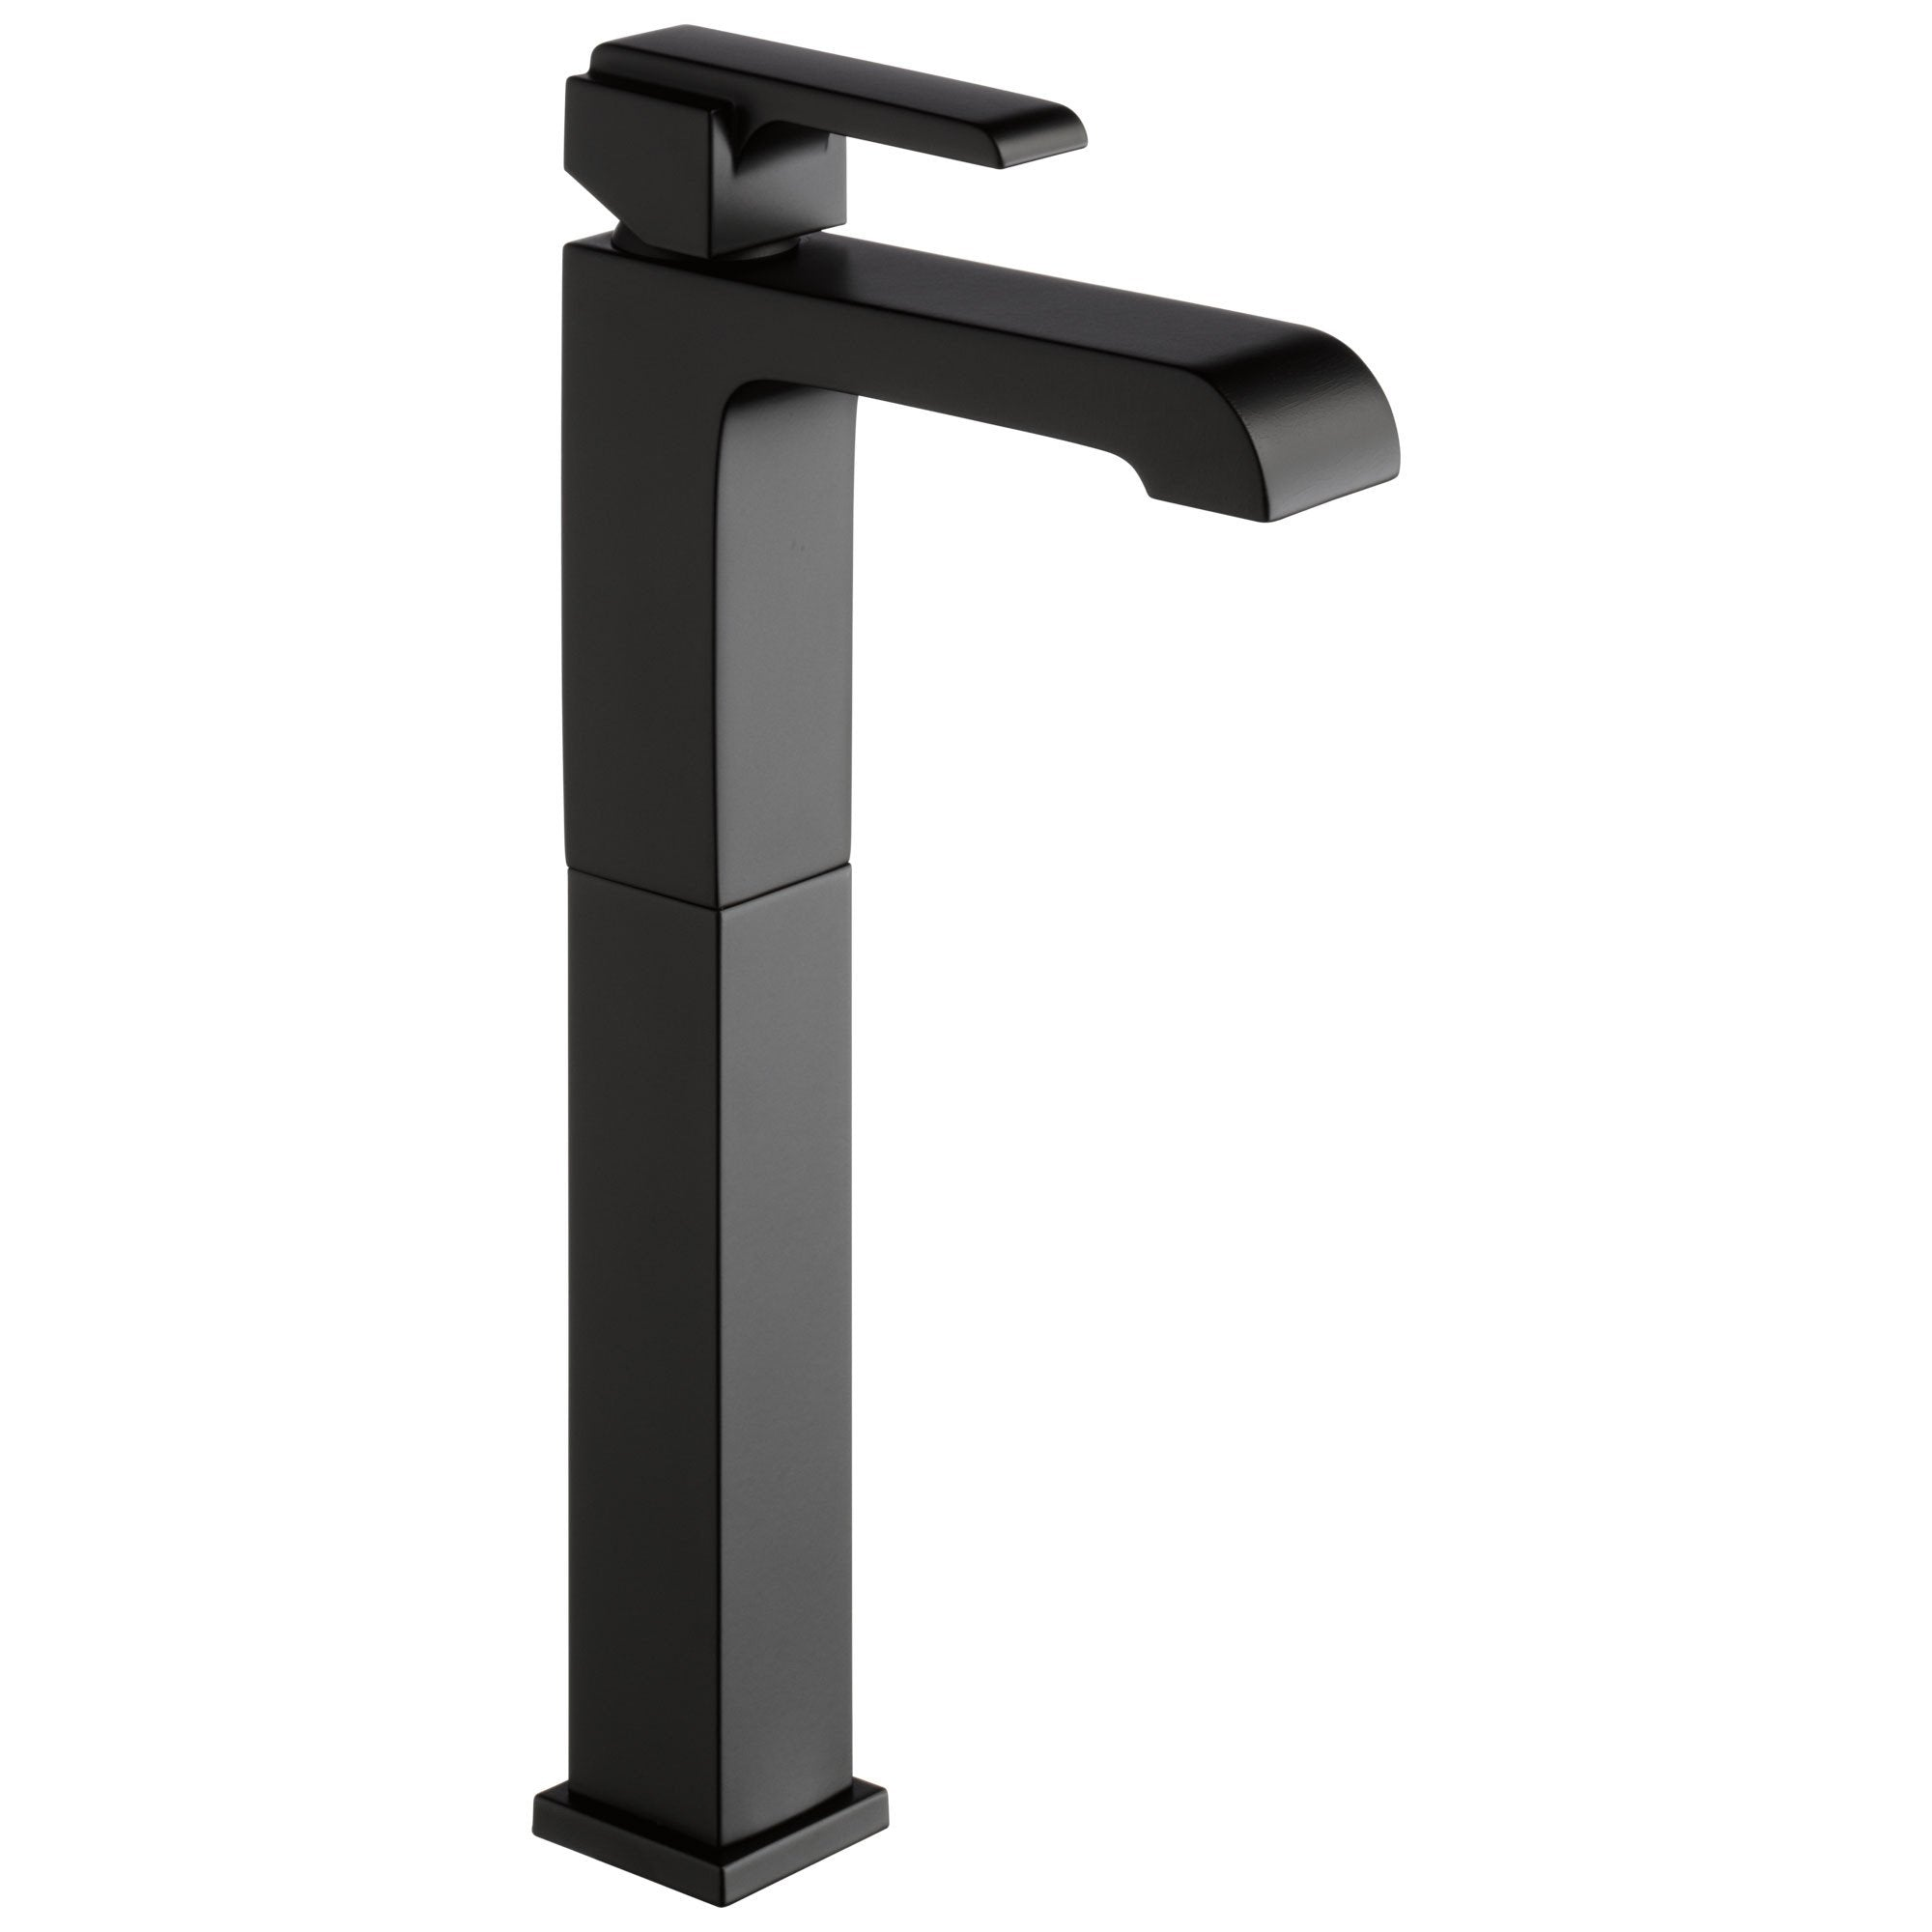 Delta Ara Collection Matte Black Finish Single Handle Tall Vessel Bathroom Lavatory Sink Faucet D767LFBL